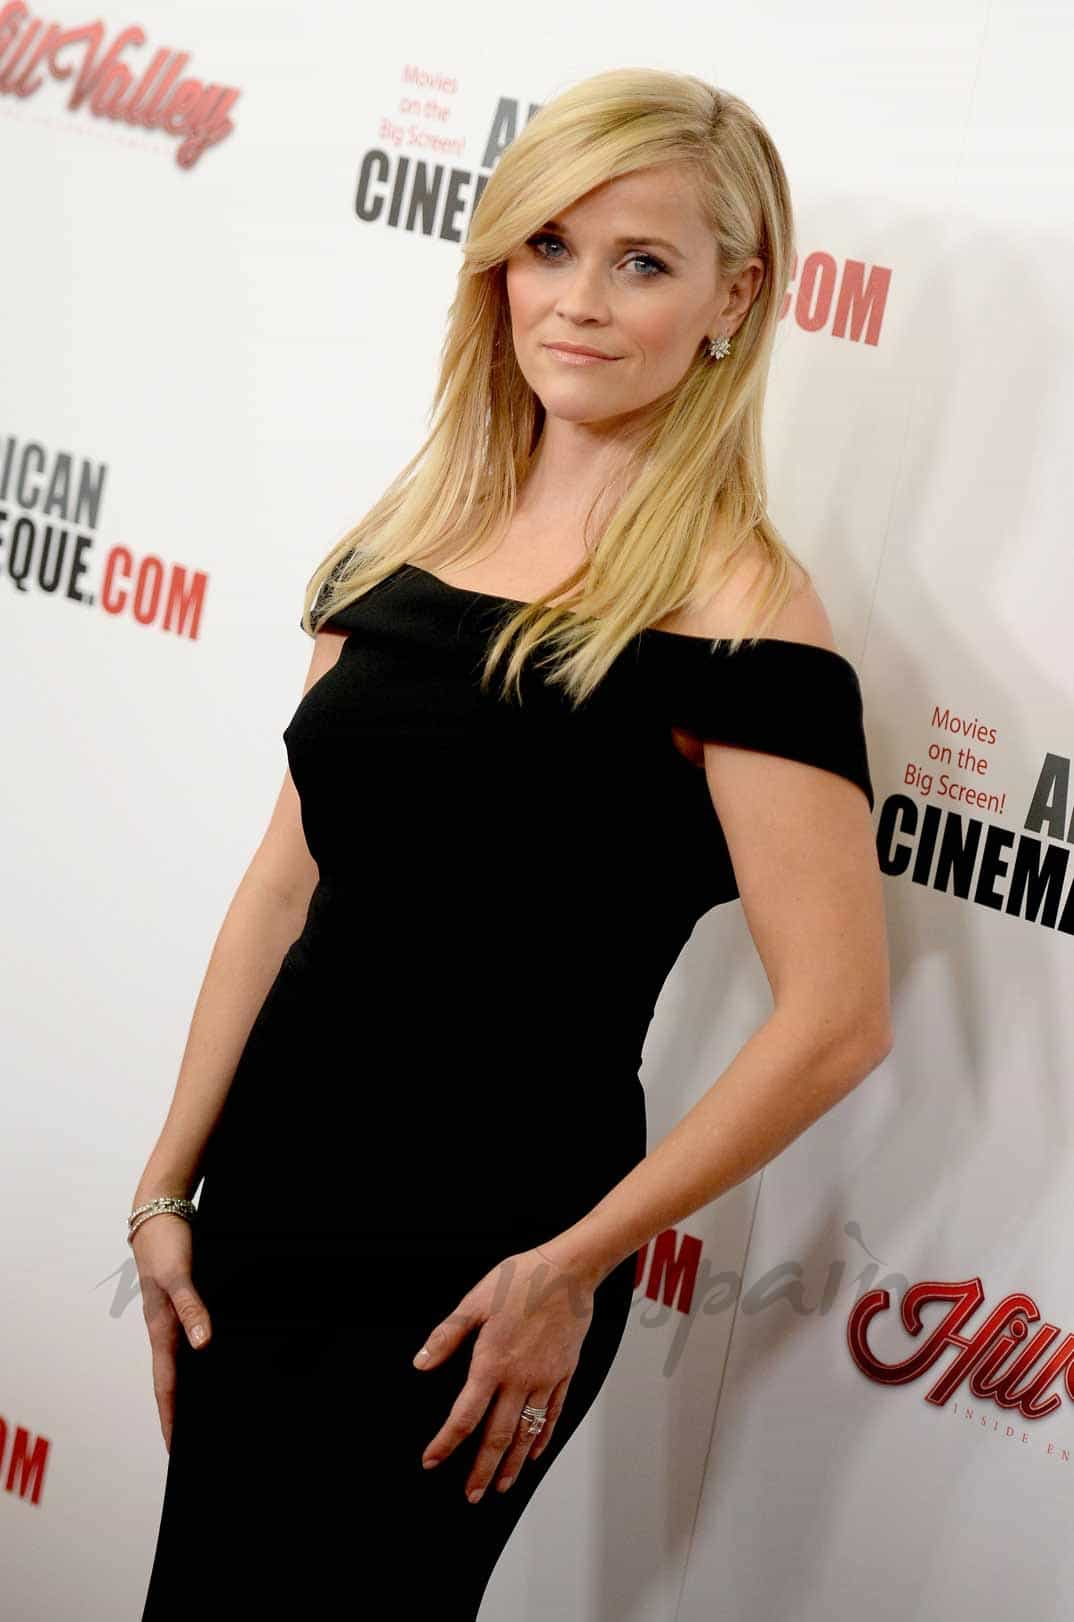 reese-witherspoon, escritora, hollywood, actriz